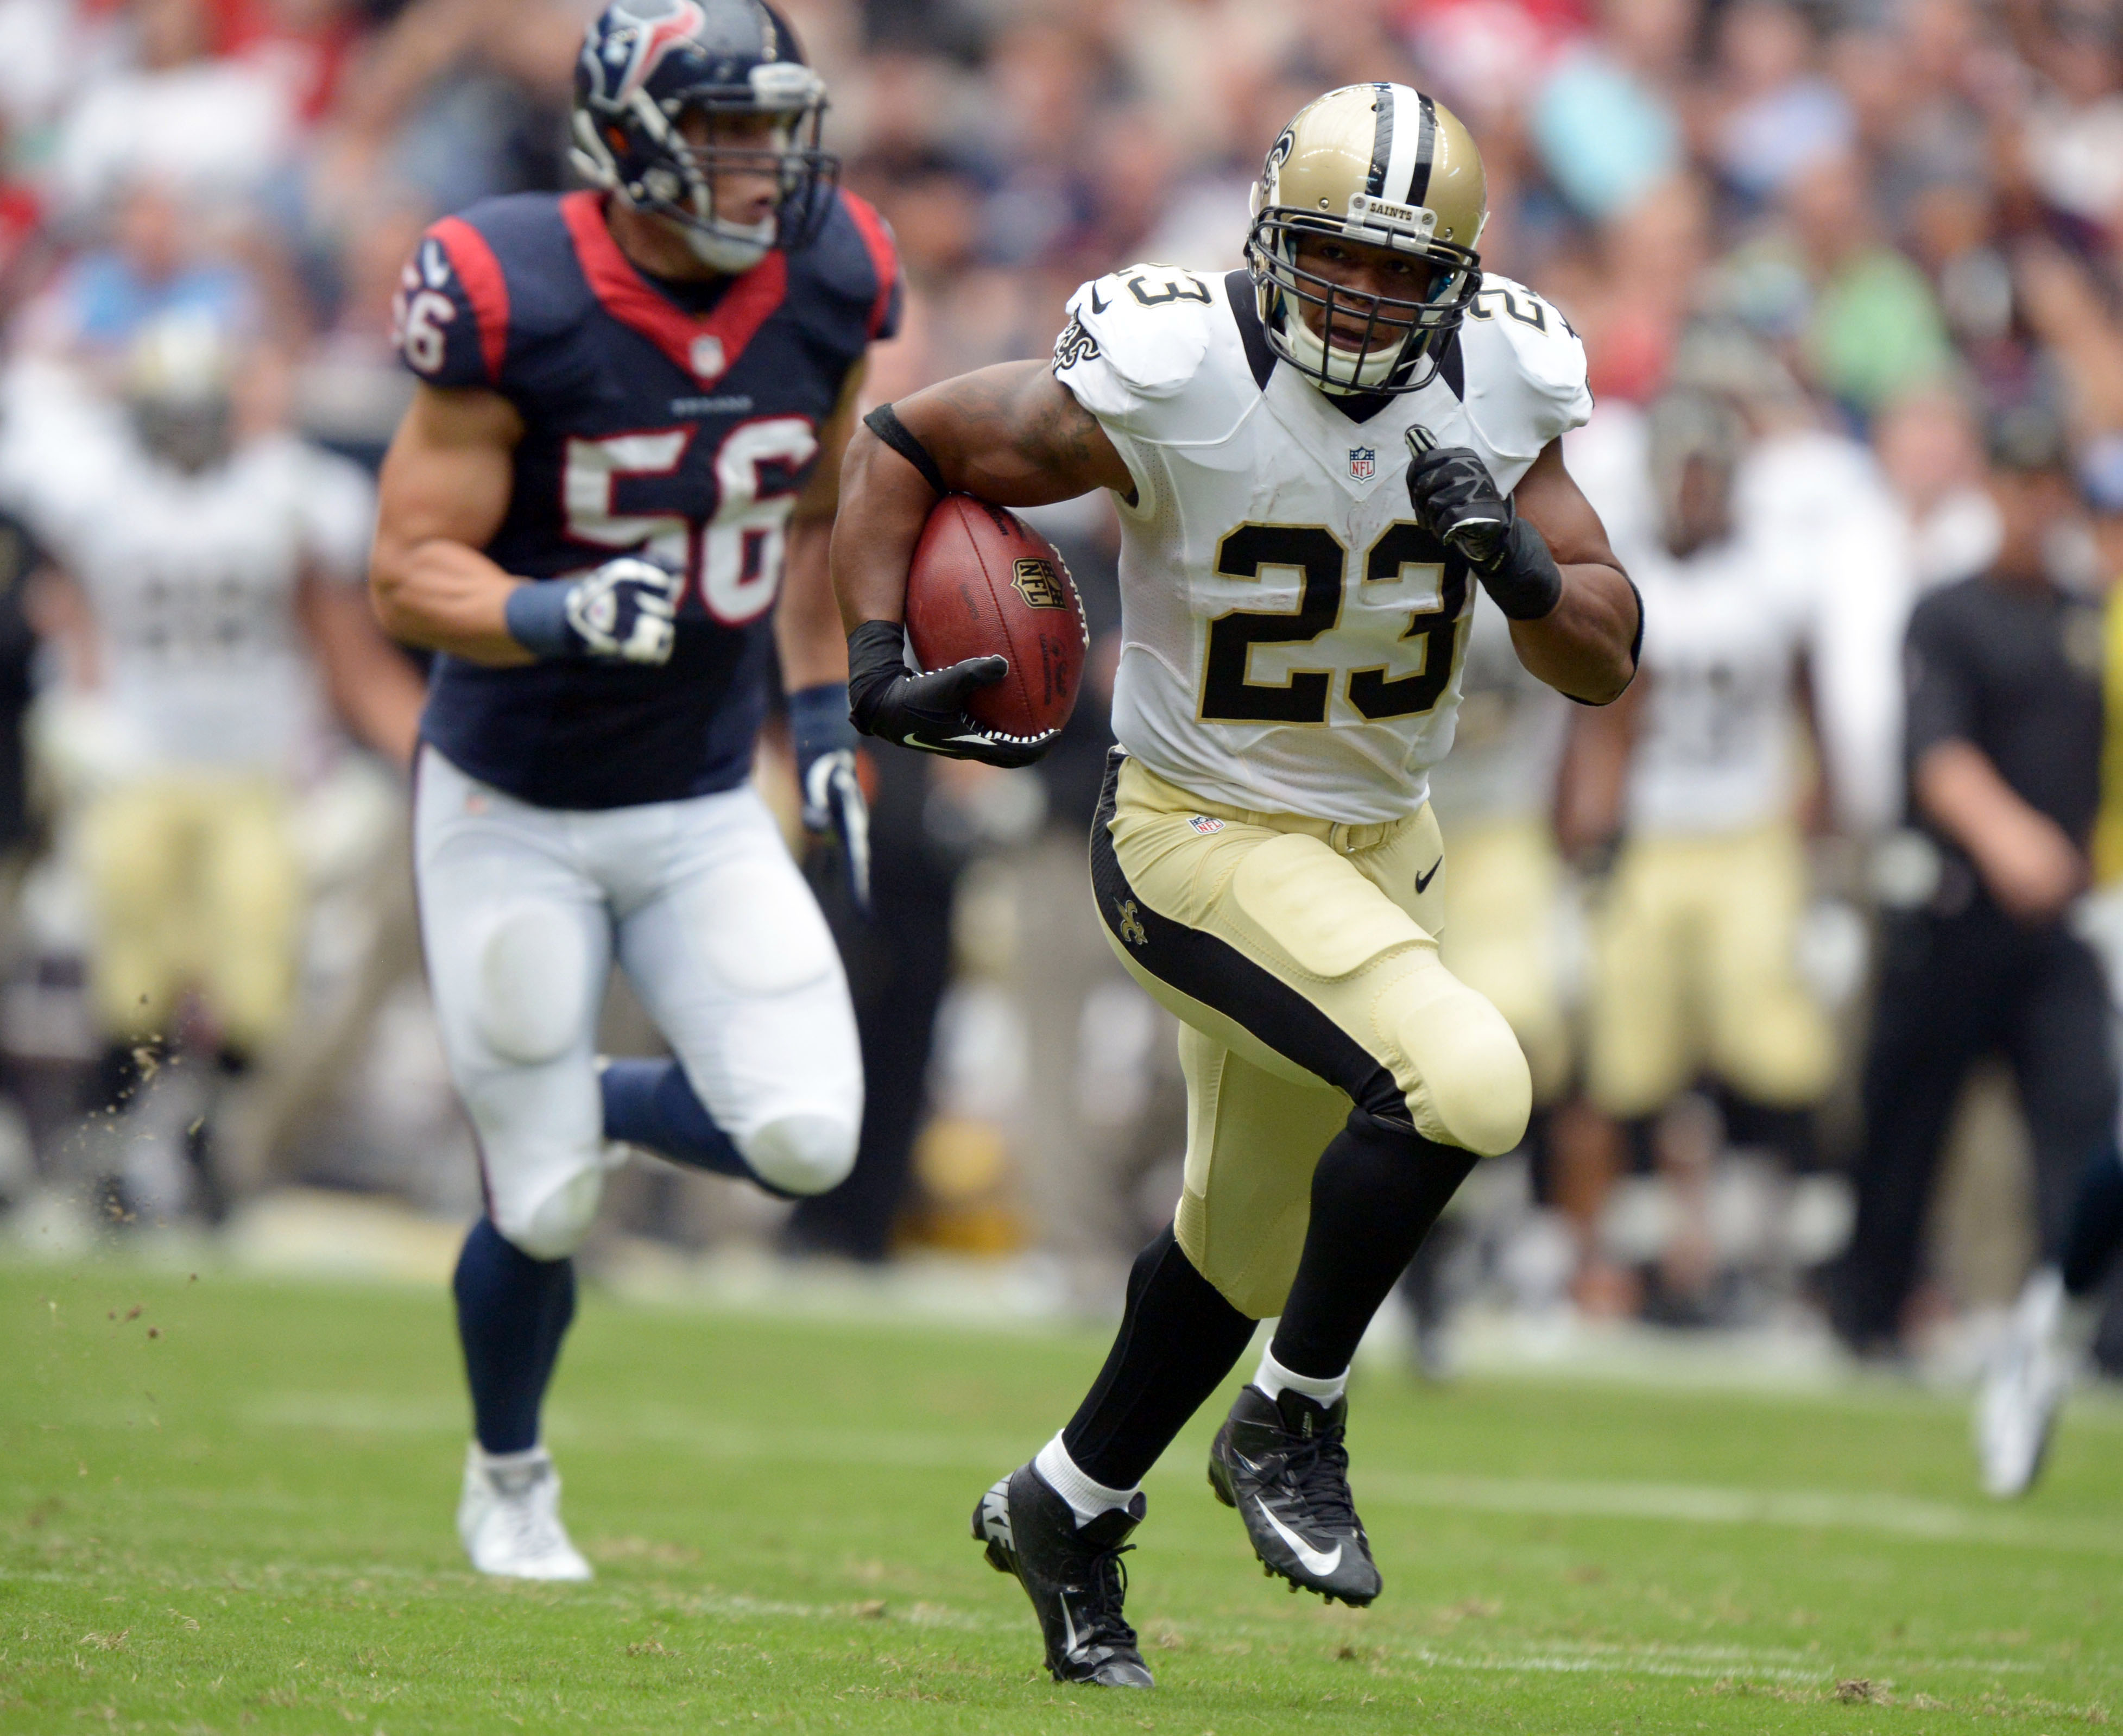 Pierre Thomas runs away from Houston as fast as he can...again.